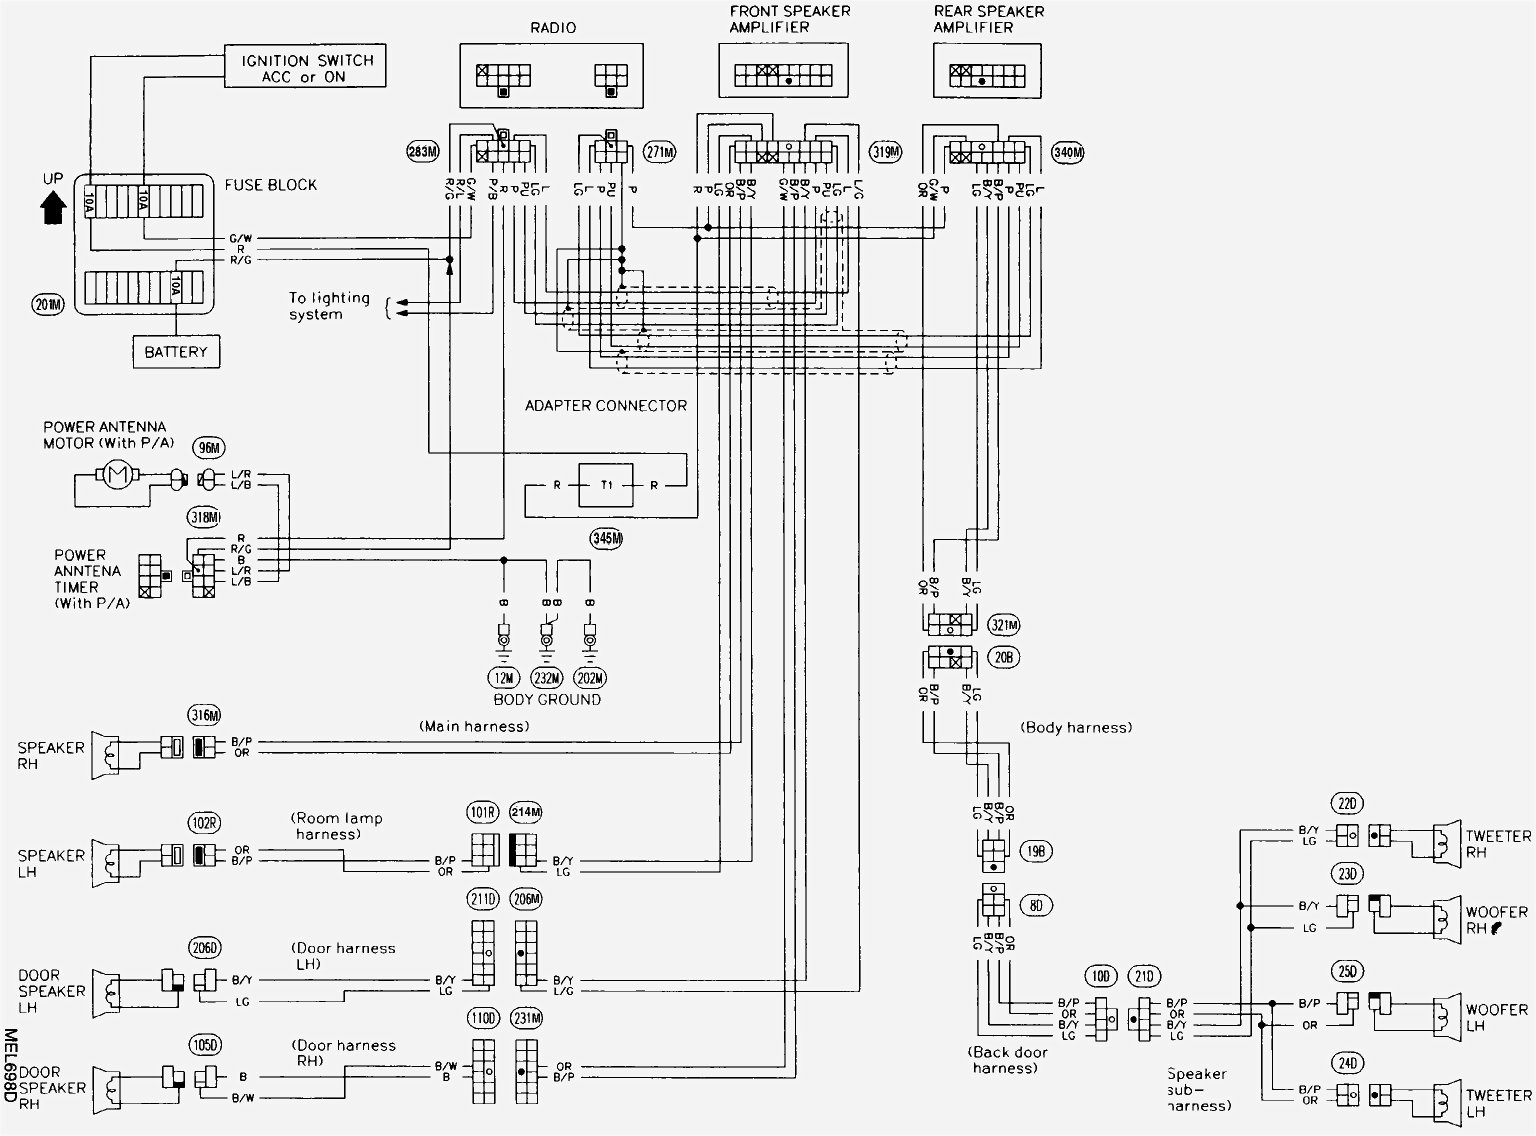 true freezer t 23f wiring diagram Collection-True Freezer T 49F Wiring Diagram hbphelp 9-p